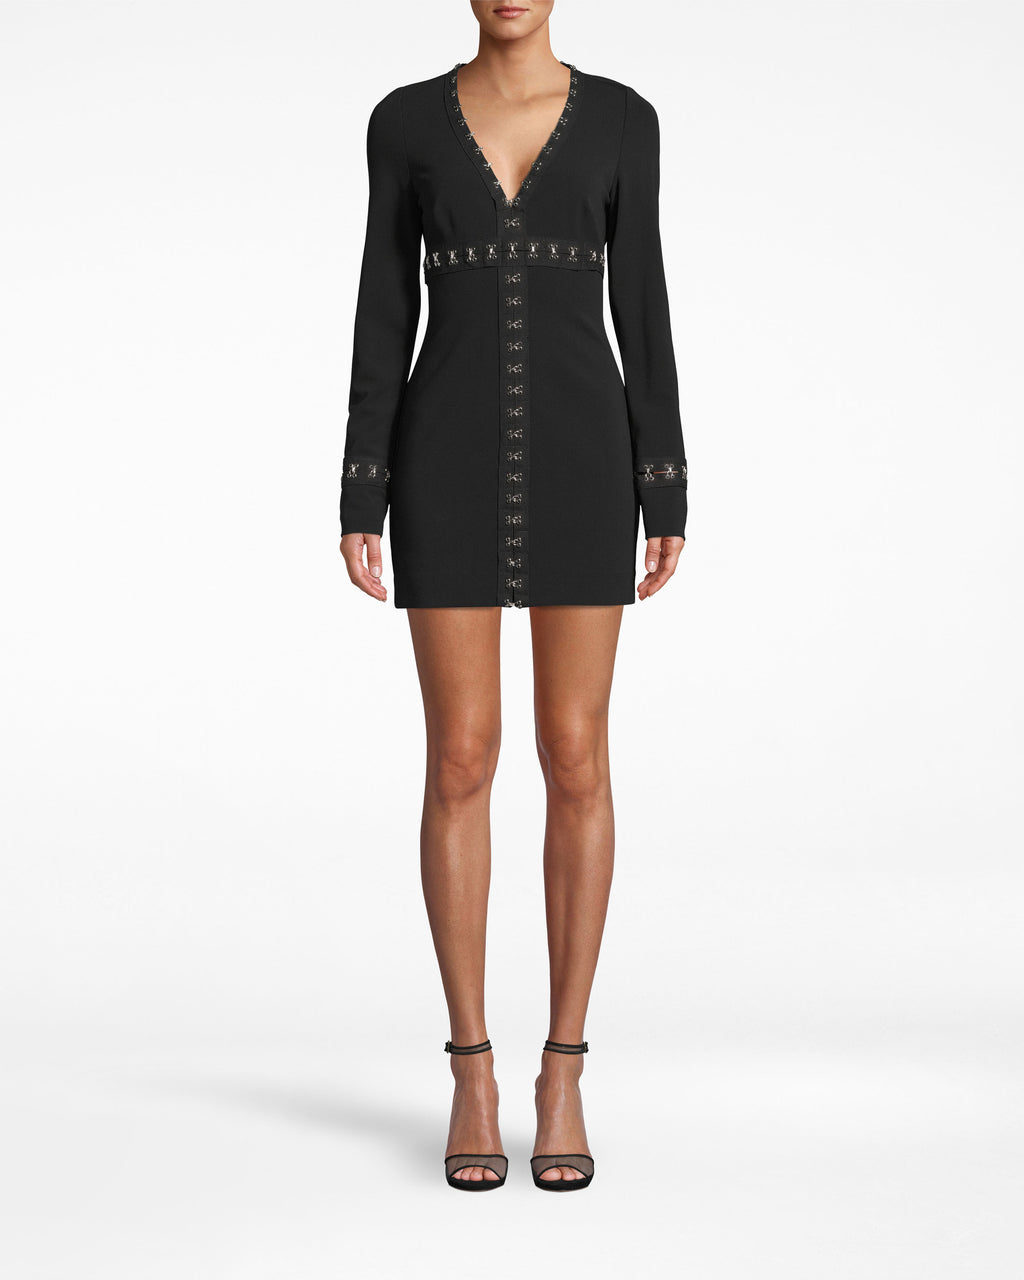 BS20065 - STRUCTURED HEAVY JERSEY MINI DRESS - dresses - short - How to grunge up the LBD. Silver hook and eye closures (resting upon black fabric) line the border of the neckline, move across and back to the bodice, and extend down to the hem. Exposed back zipper for closure.